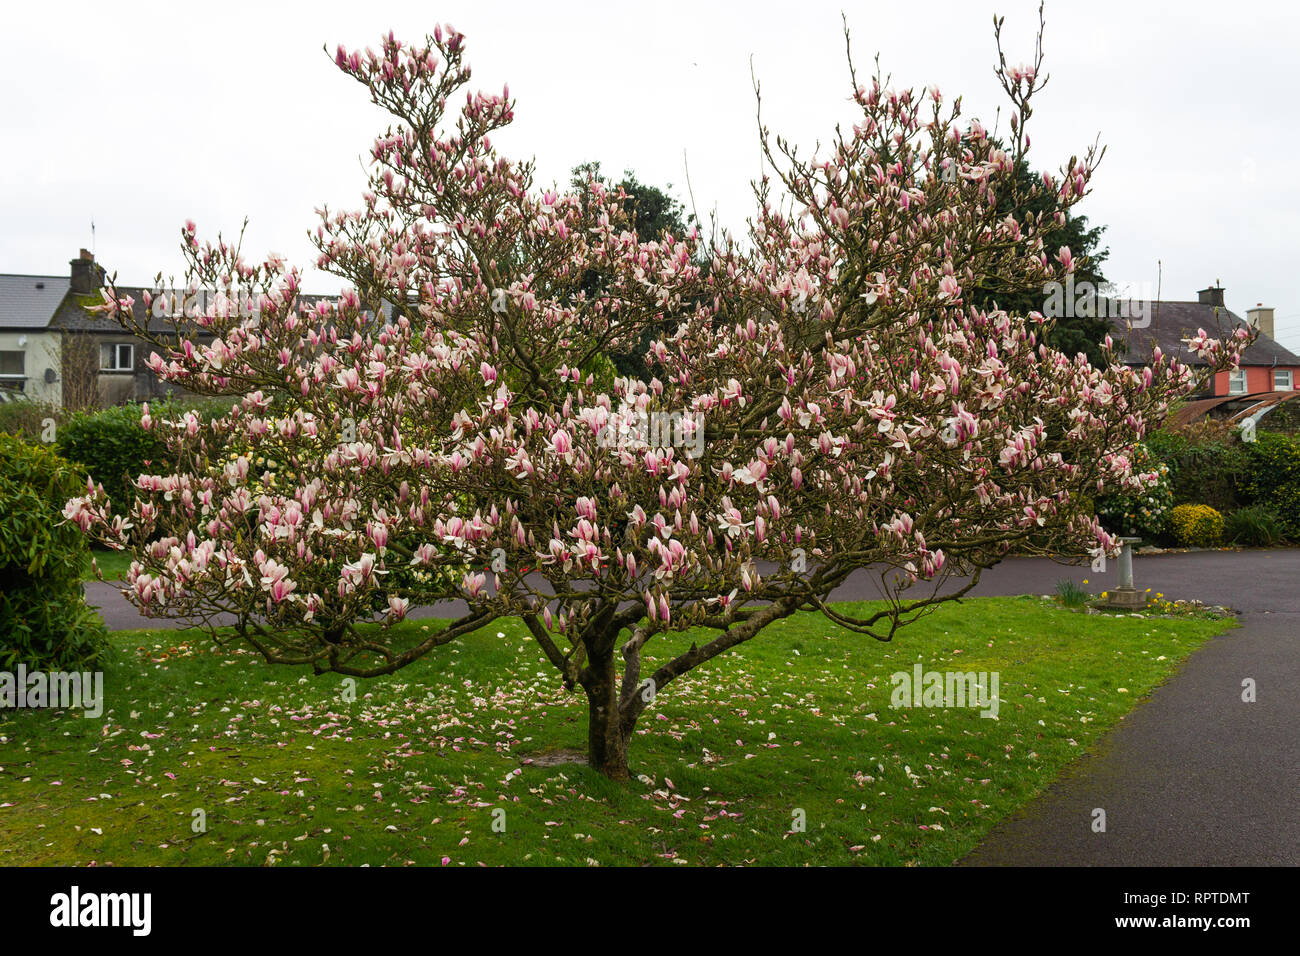 magnolia-tree-in-full-spring-flower-RPTDMT.jpg